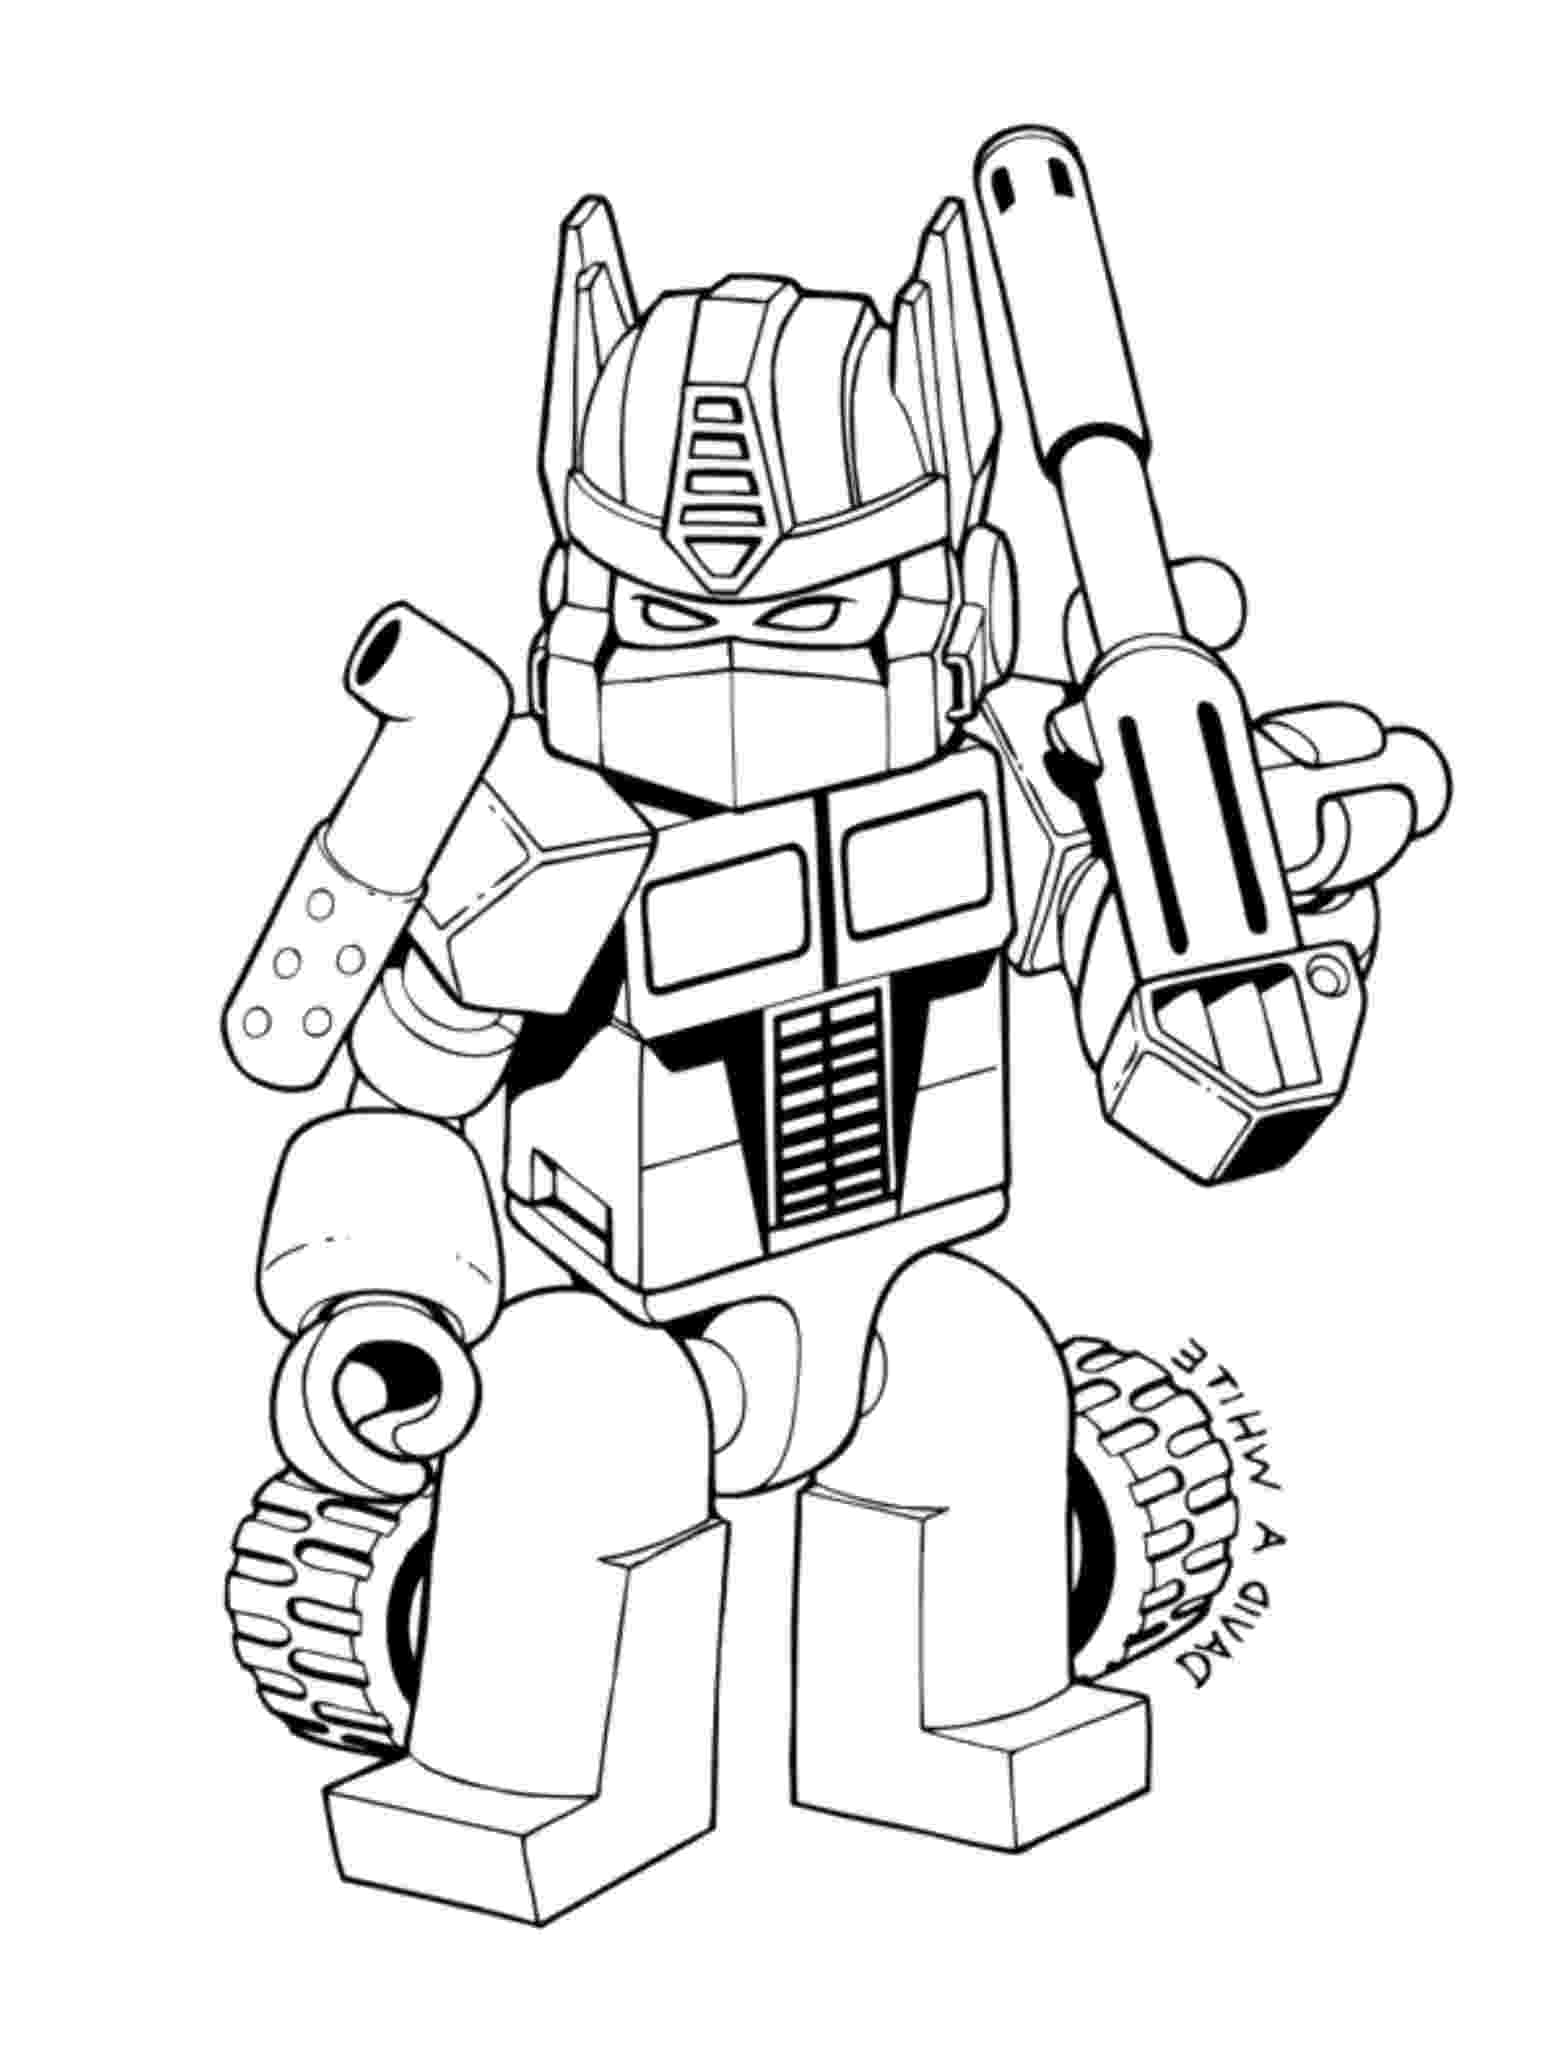 coloring pages transformers transformers coloring pages free printable coloring coloring pages transformers